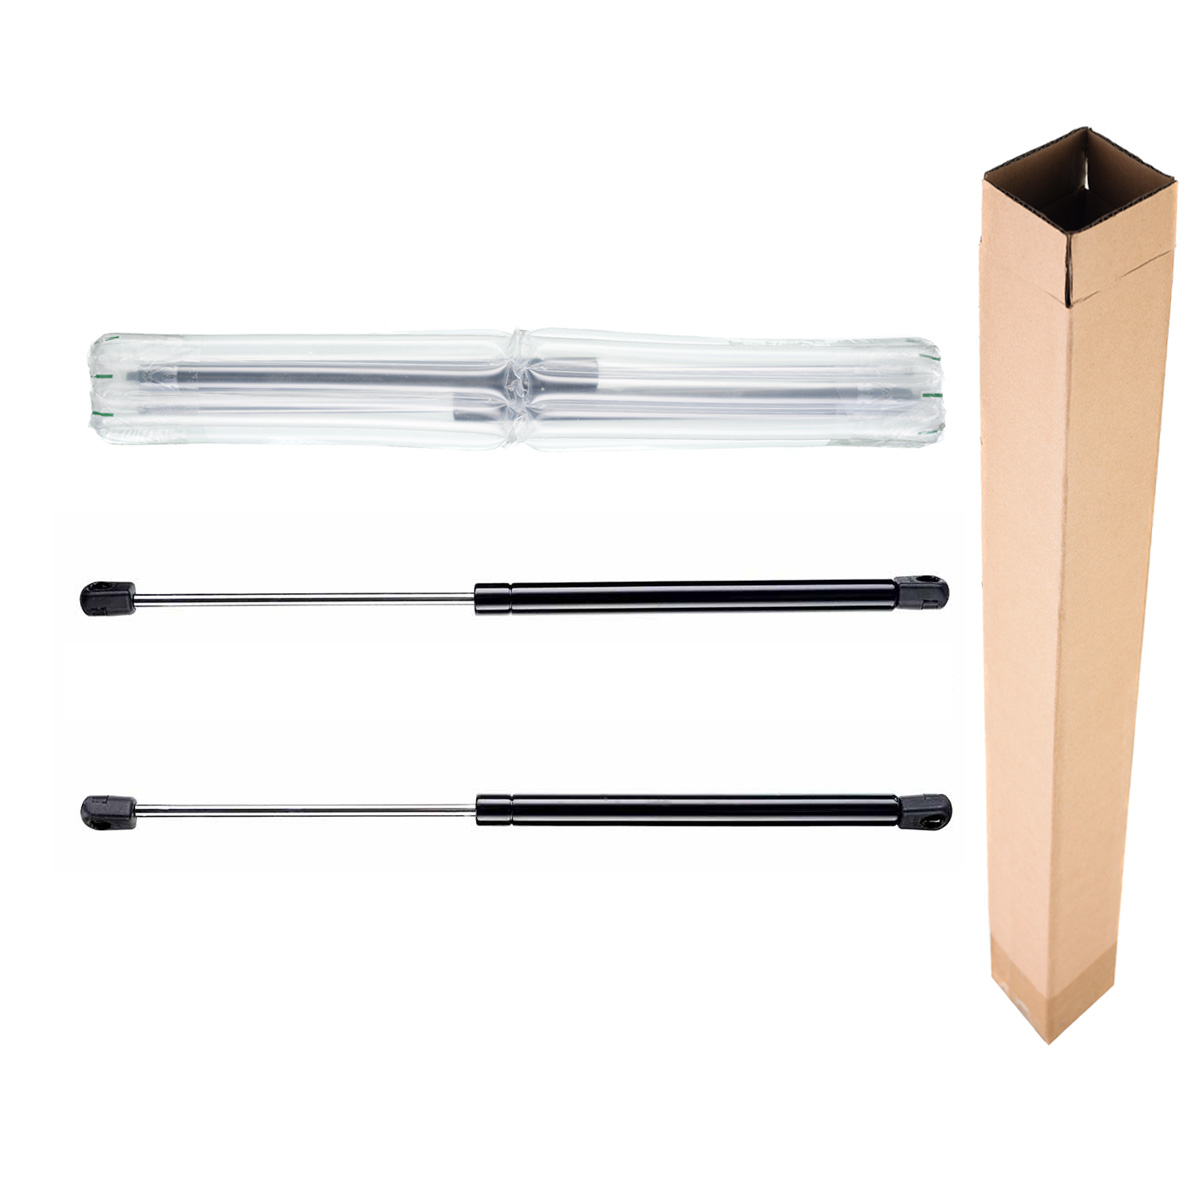 Set of 2 rear window glass lift supports shock gas struts for ford bronco ii 1984